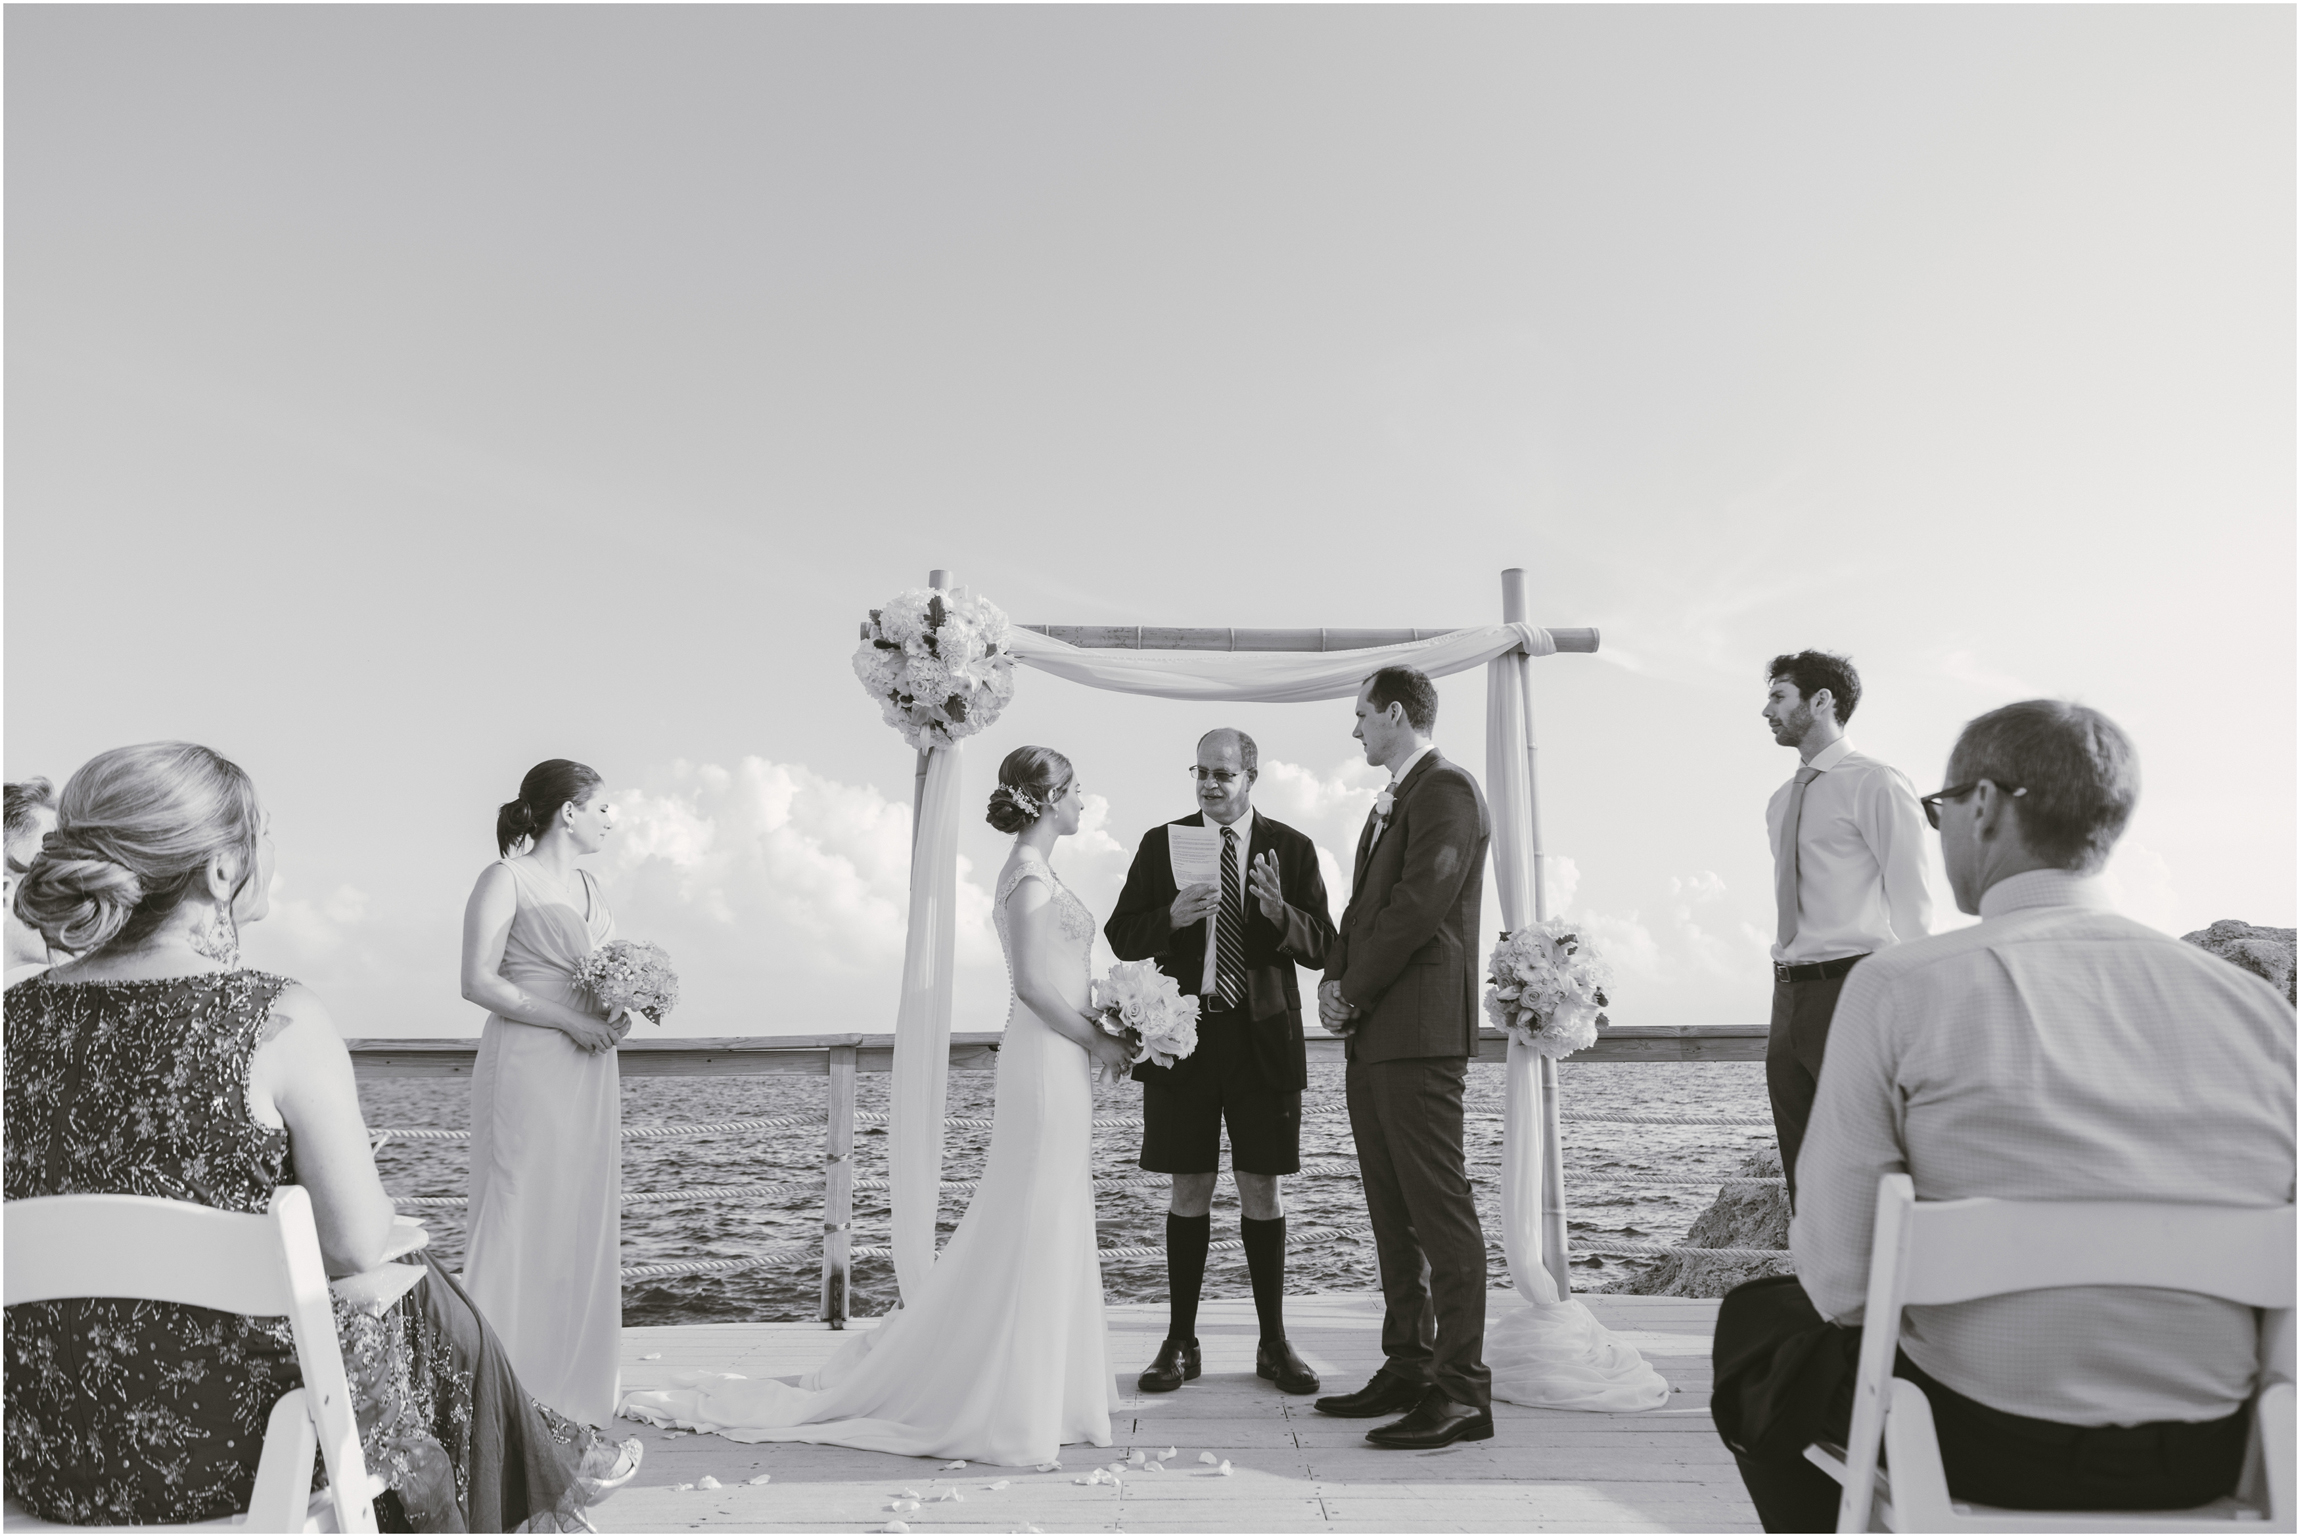 ©FianderFoto_Caribbean_Wedding_Photographer_The Reefs_Bermuda_Lauren_Erik_060.jpg